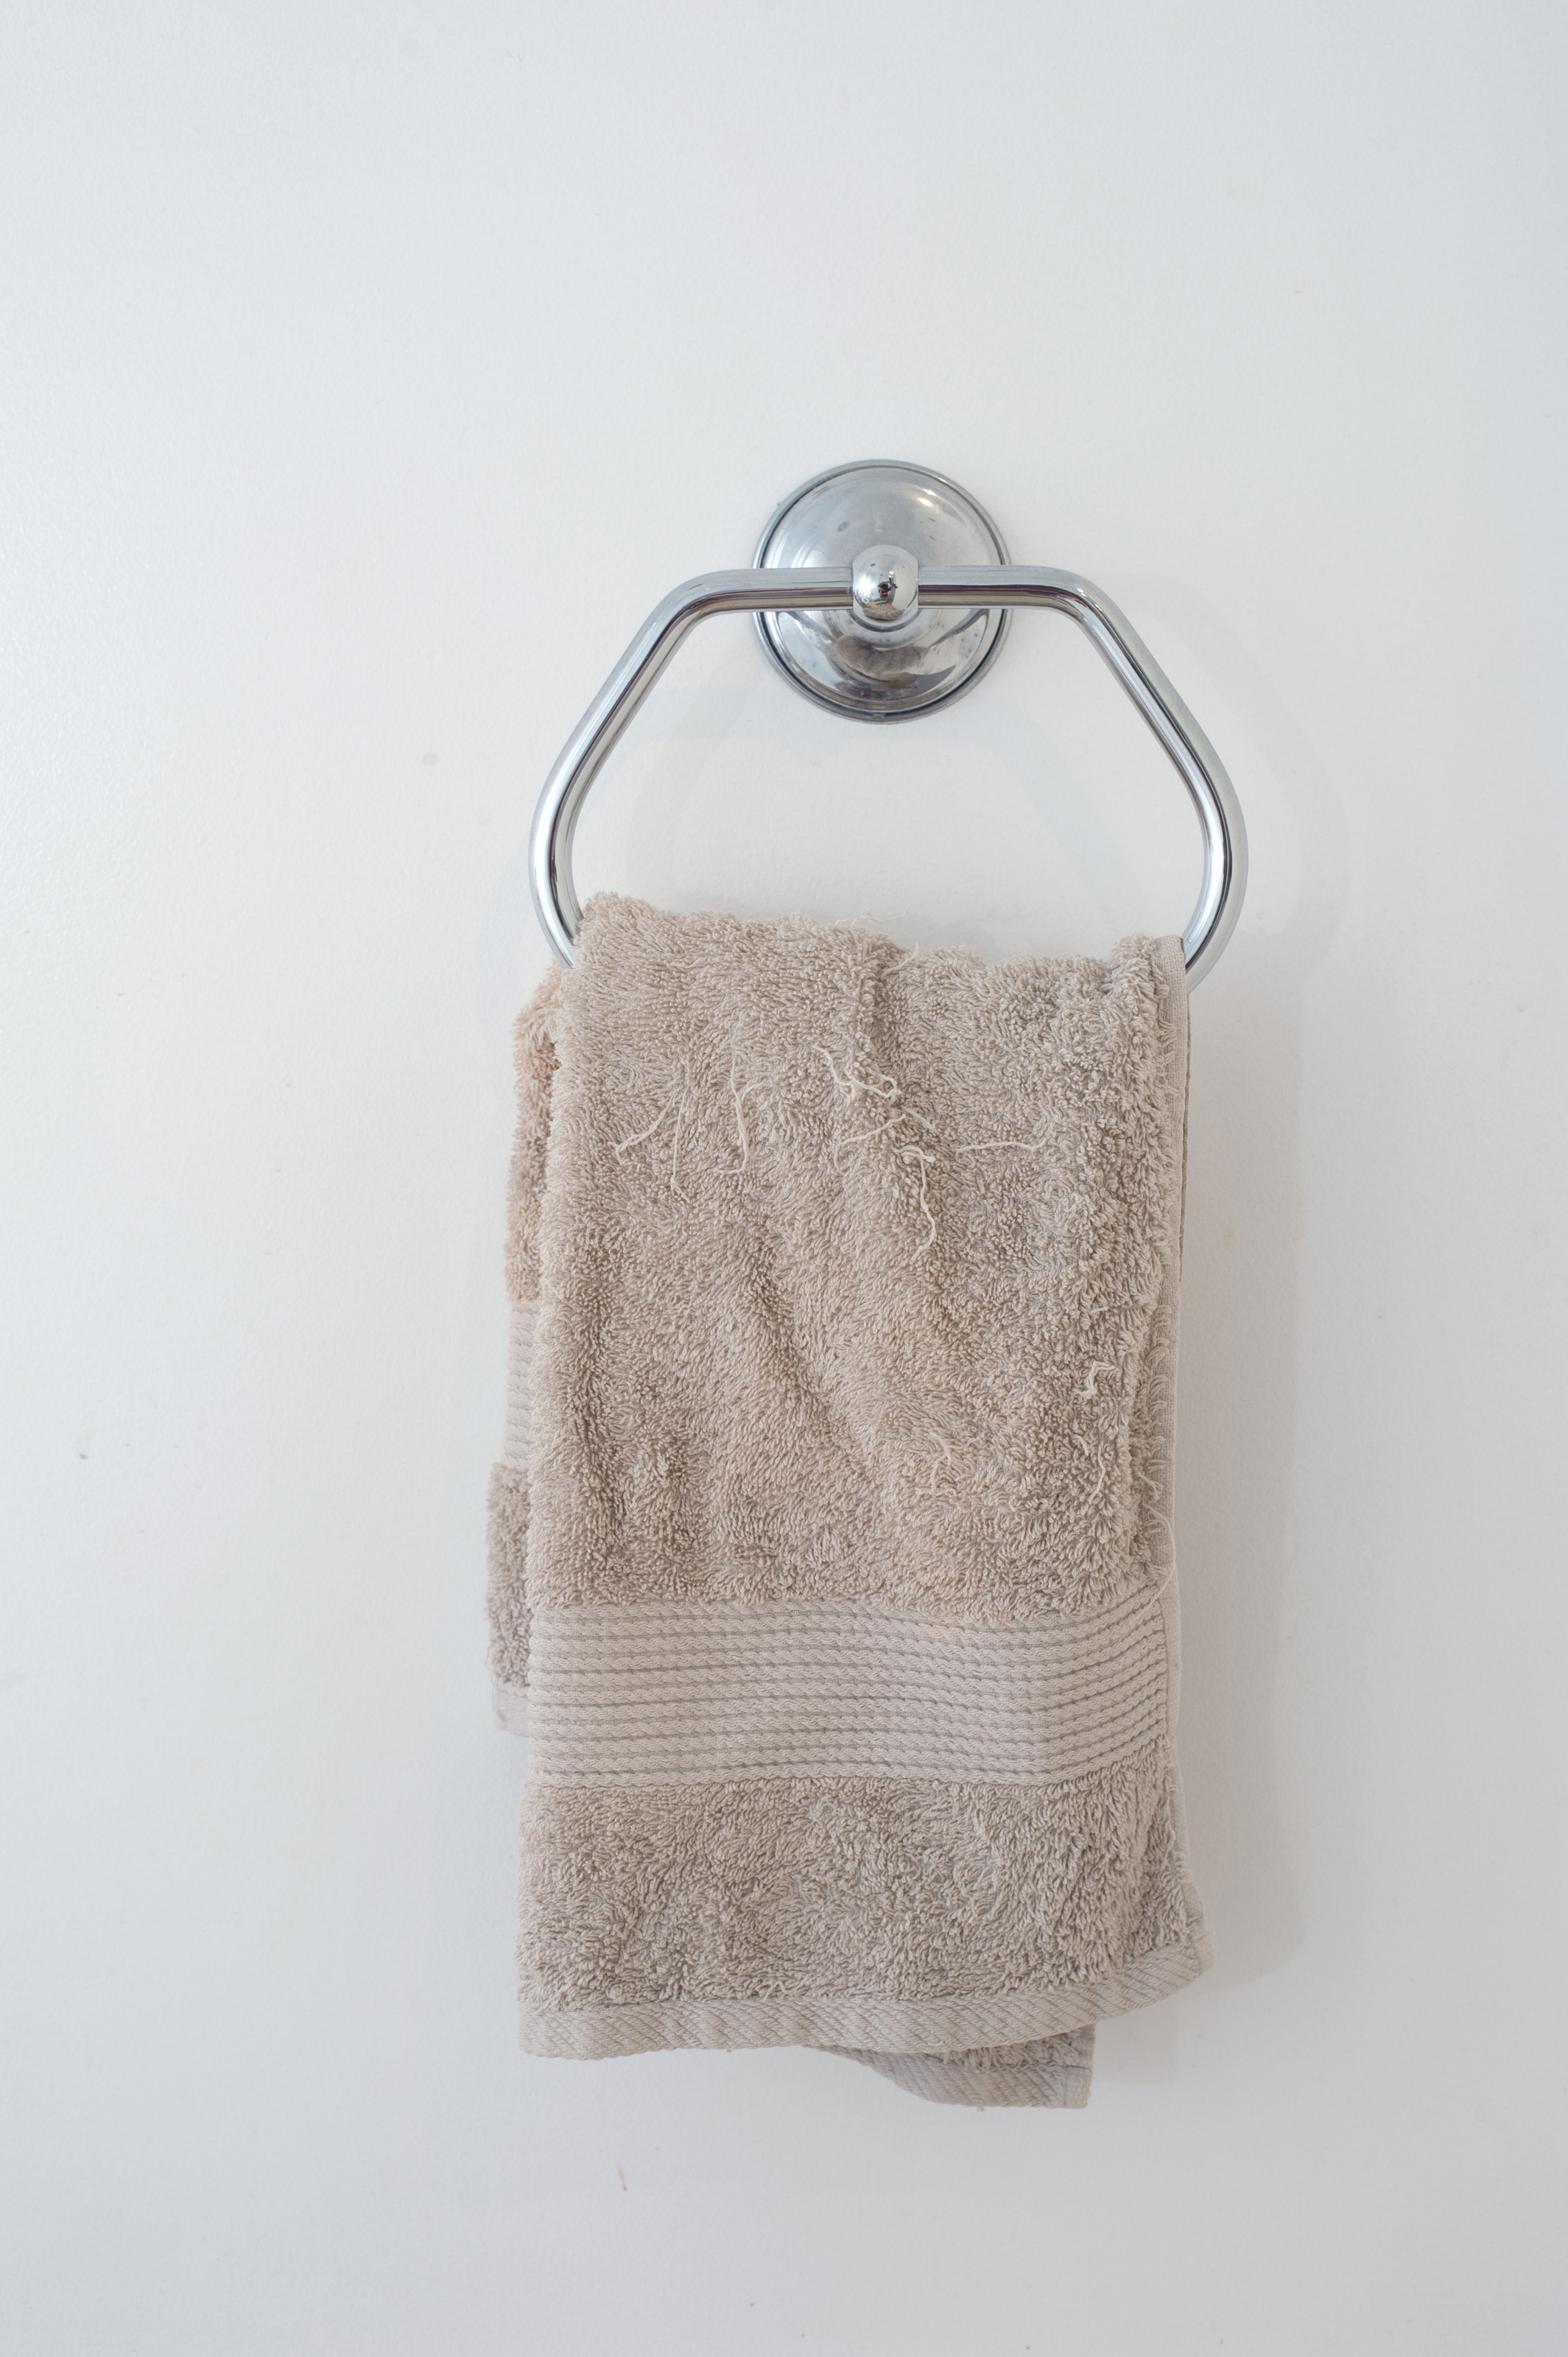 hand towel. Beige Hand Towel Hanging In A Bathroom From Stainless Steel Wall Mounted  Fixture Free Stock Photo 6923